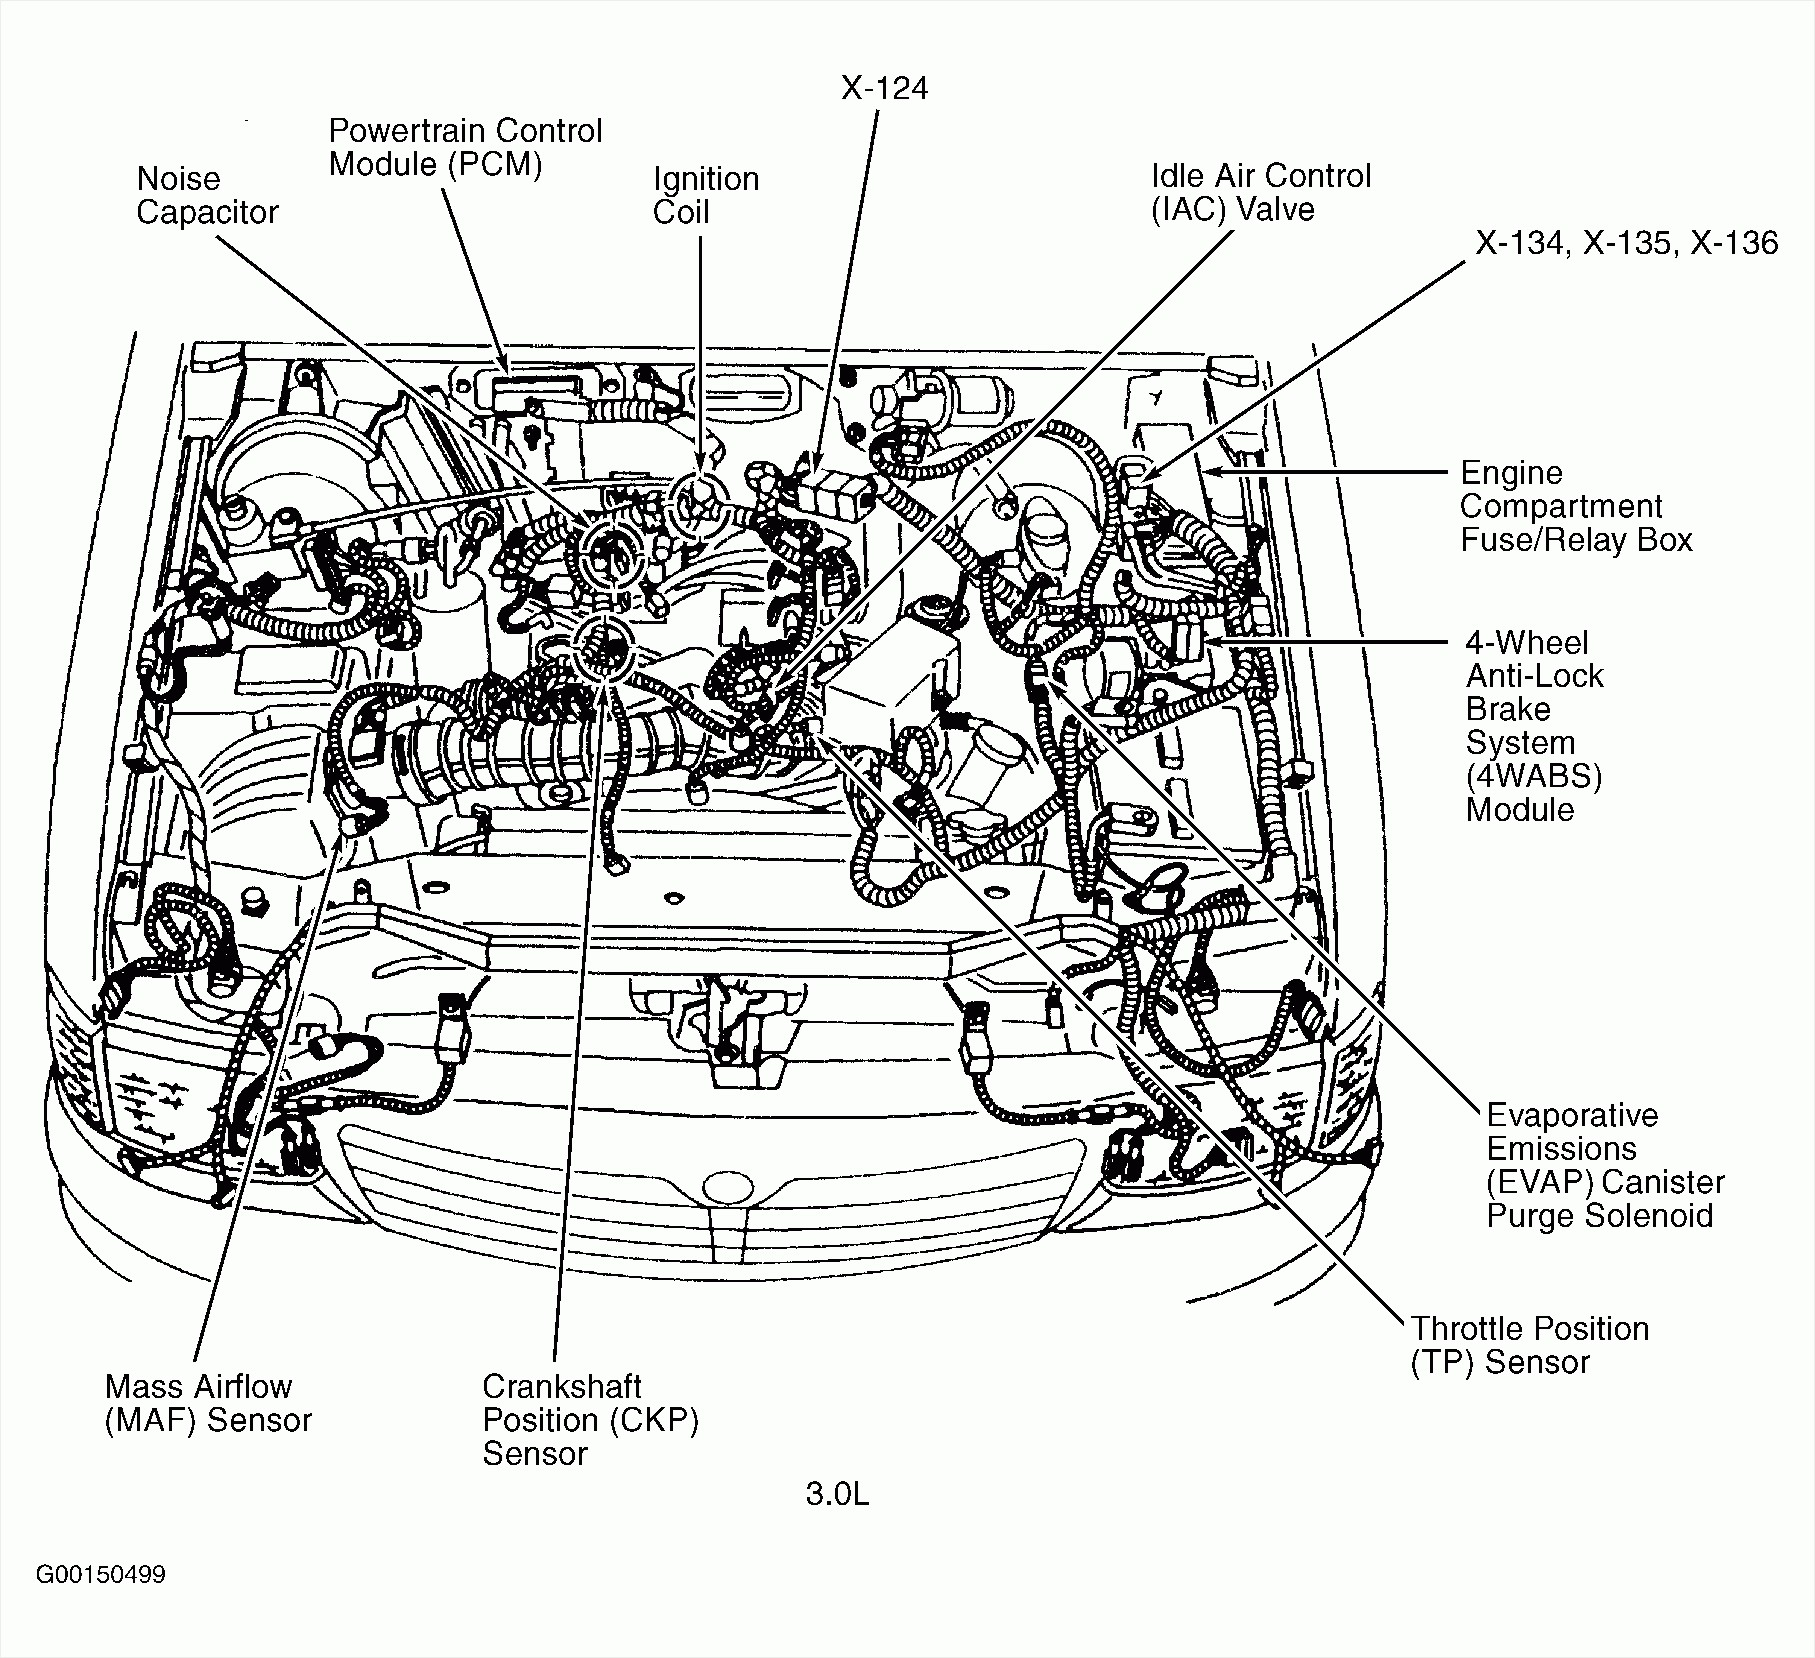 hight resolution of 1991 pontiac 3 1 engine diagram wiring diagram load 1991 pontiac 3 1l engine diagram